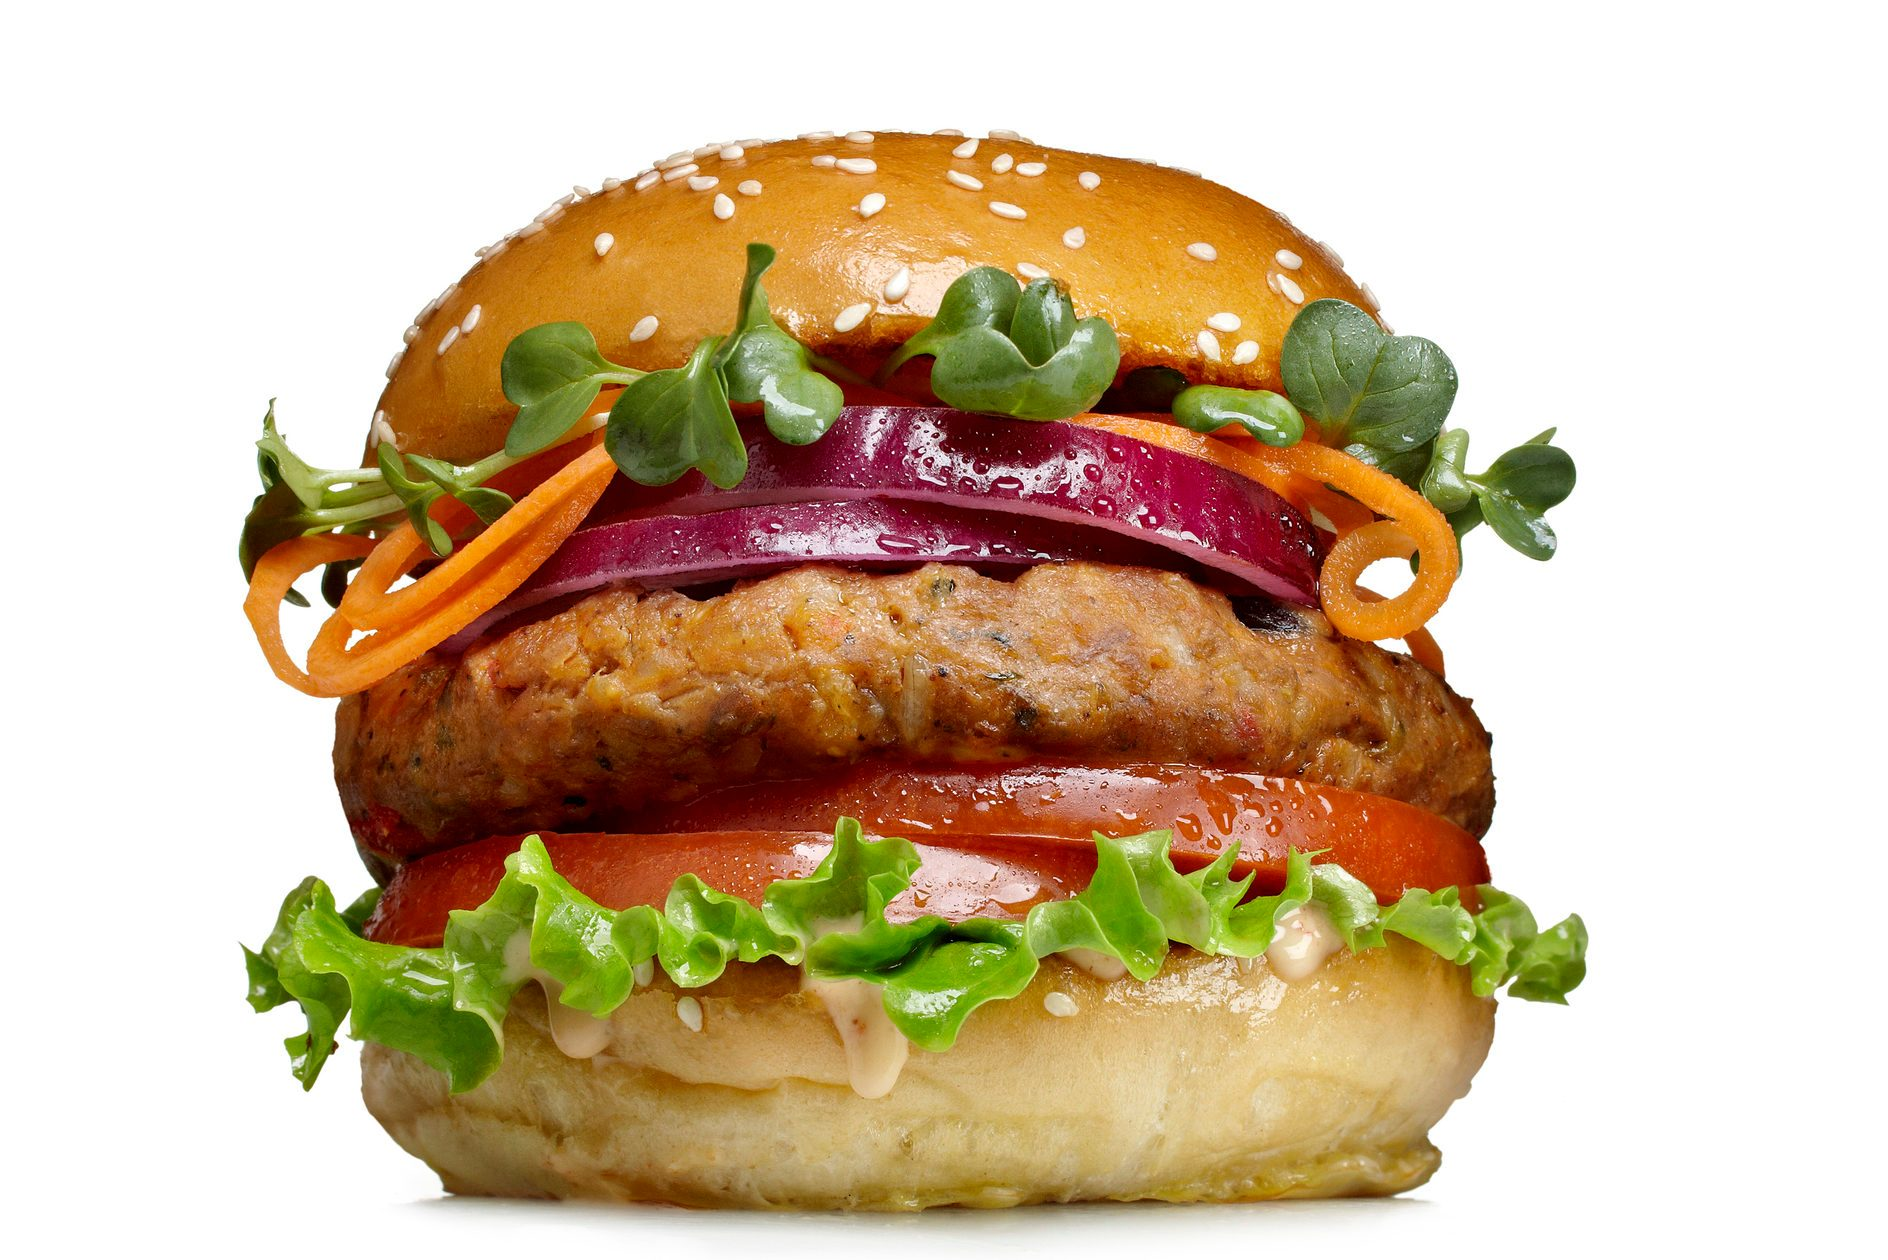 veggie burger on white background